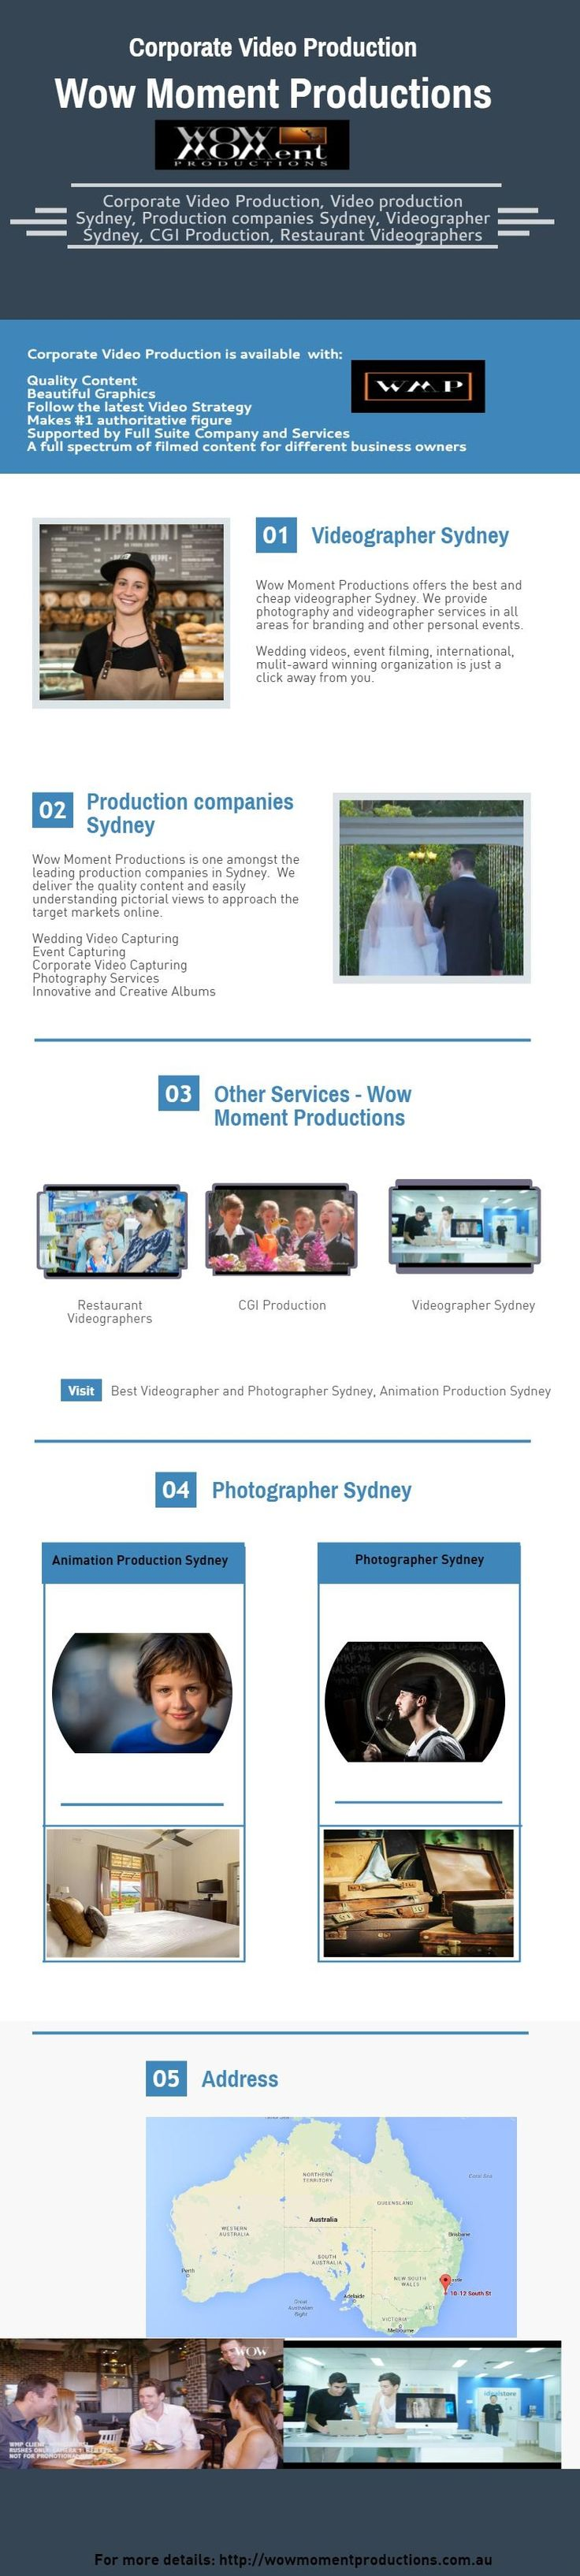 Approach us right now for the best corporate video production in Sydney at Wow Moment Productions.